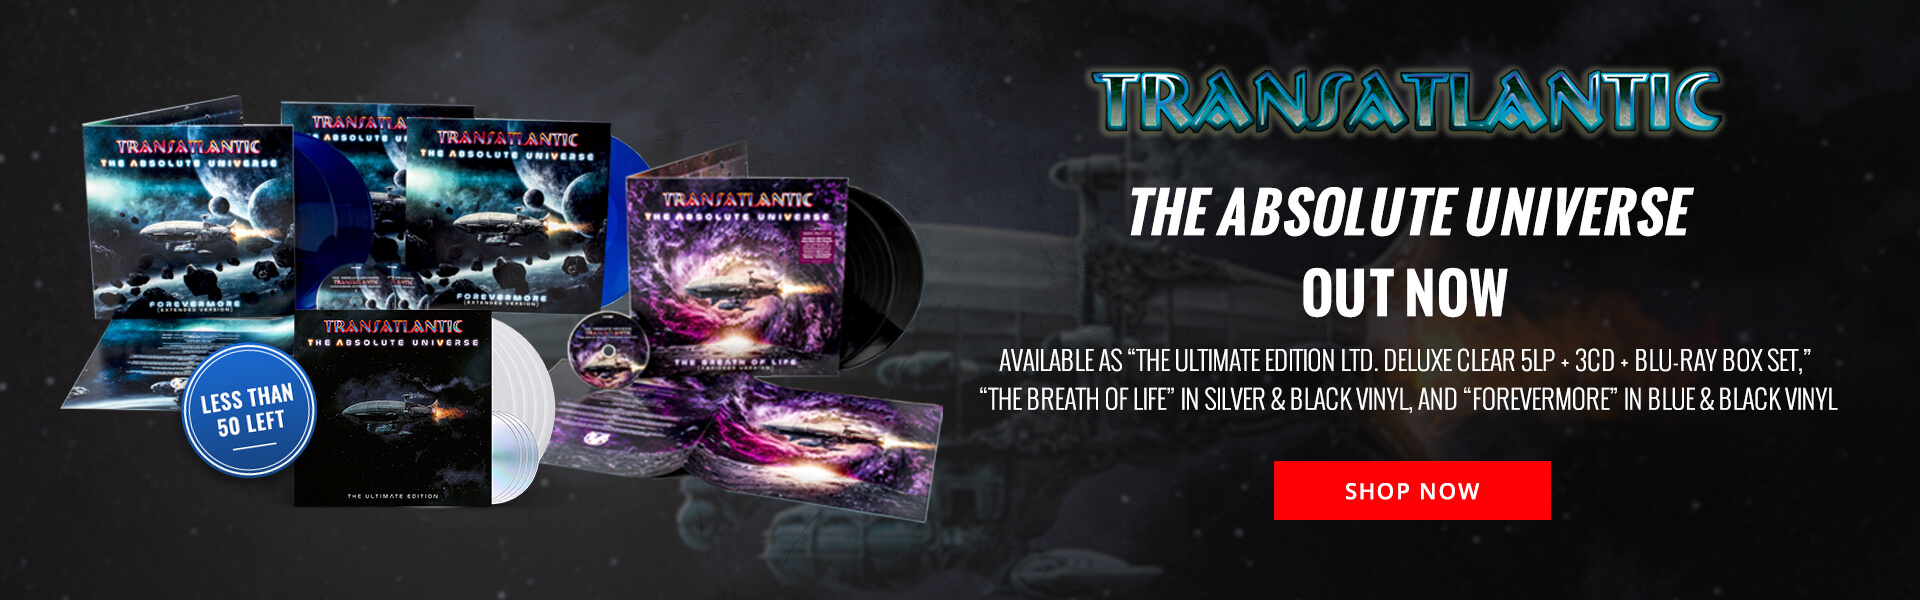 "Transatlantic's The Absolute Universe out now. Available as ""The Ultimate Edition Limited Deluxe Clear 5LP + 3CD + Blu-ray Box Set"", ""The Breath of Life"" in silver and black vinyl, and ""Forevermore"" in blue and black vinyl. Shop Now."